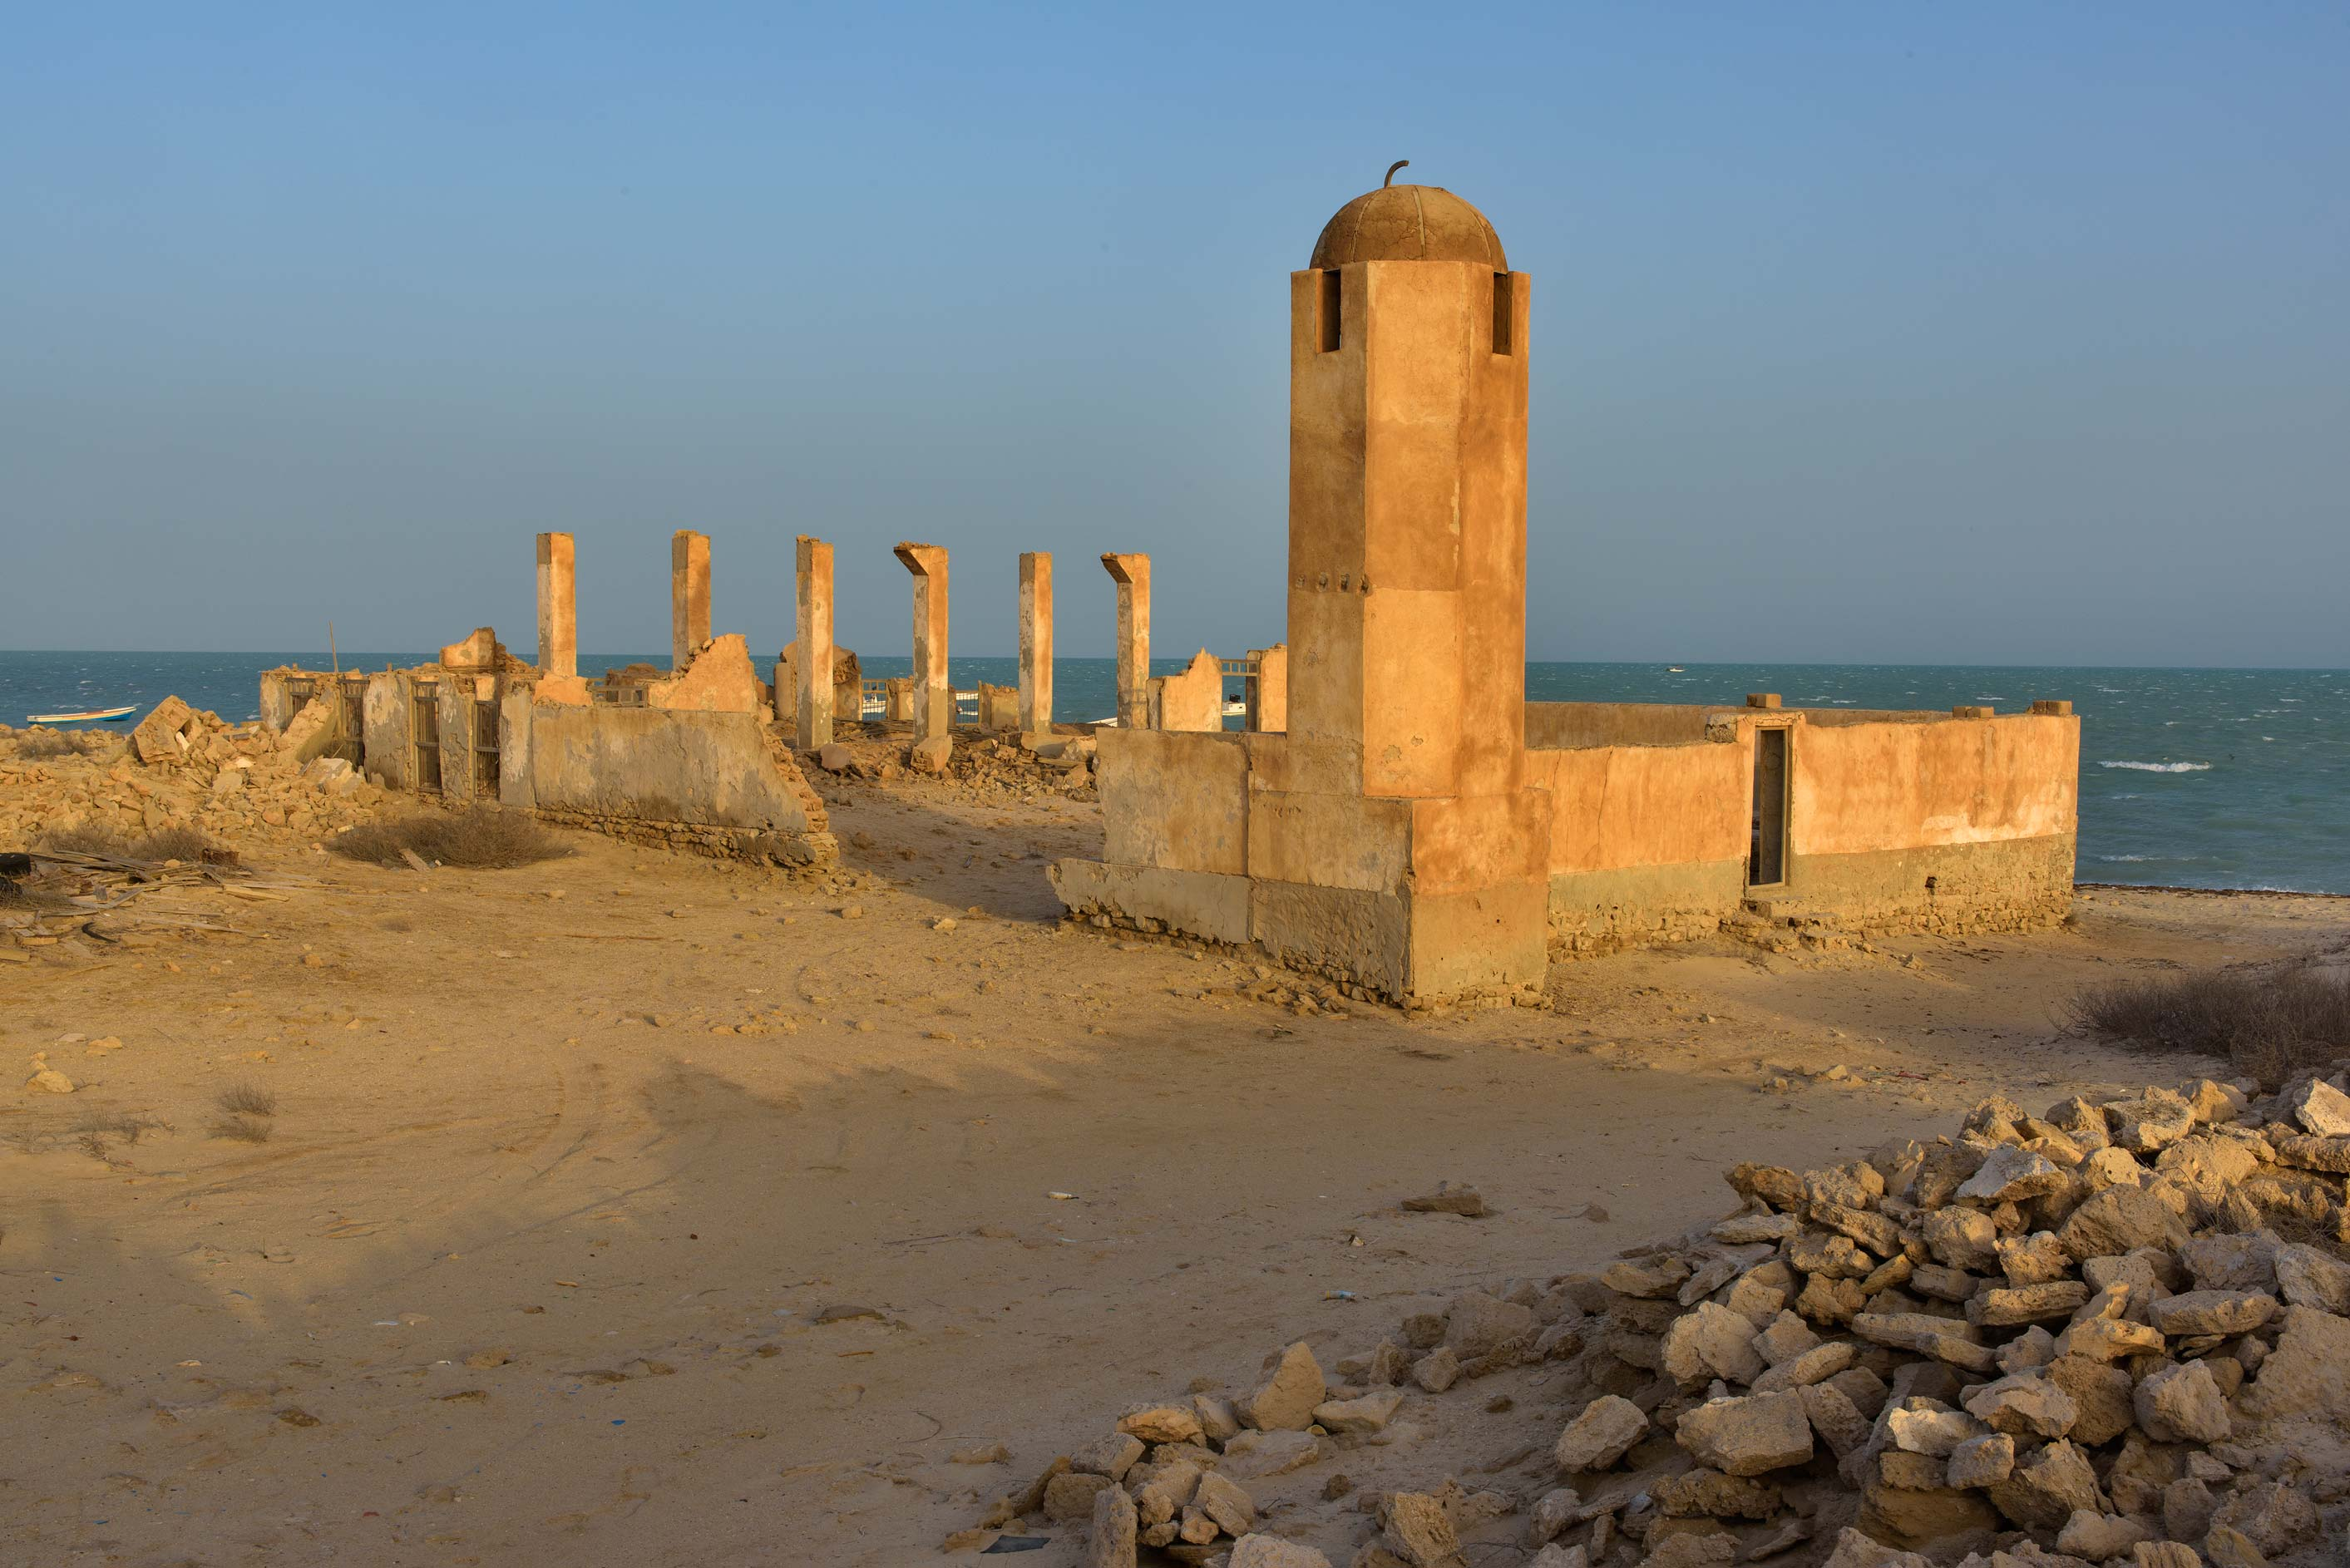 Minaret of a mosque at sunrise in old fishing...from Lekhwair on northern coast. Qatar